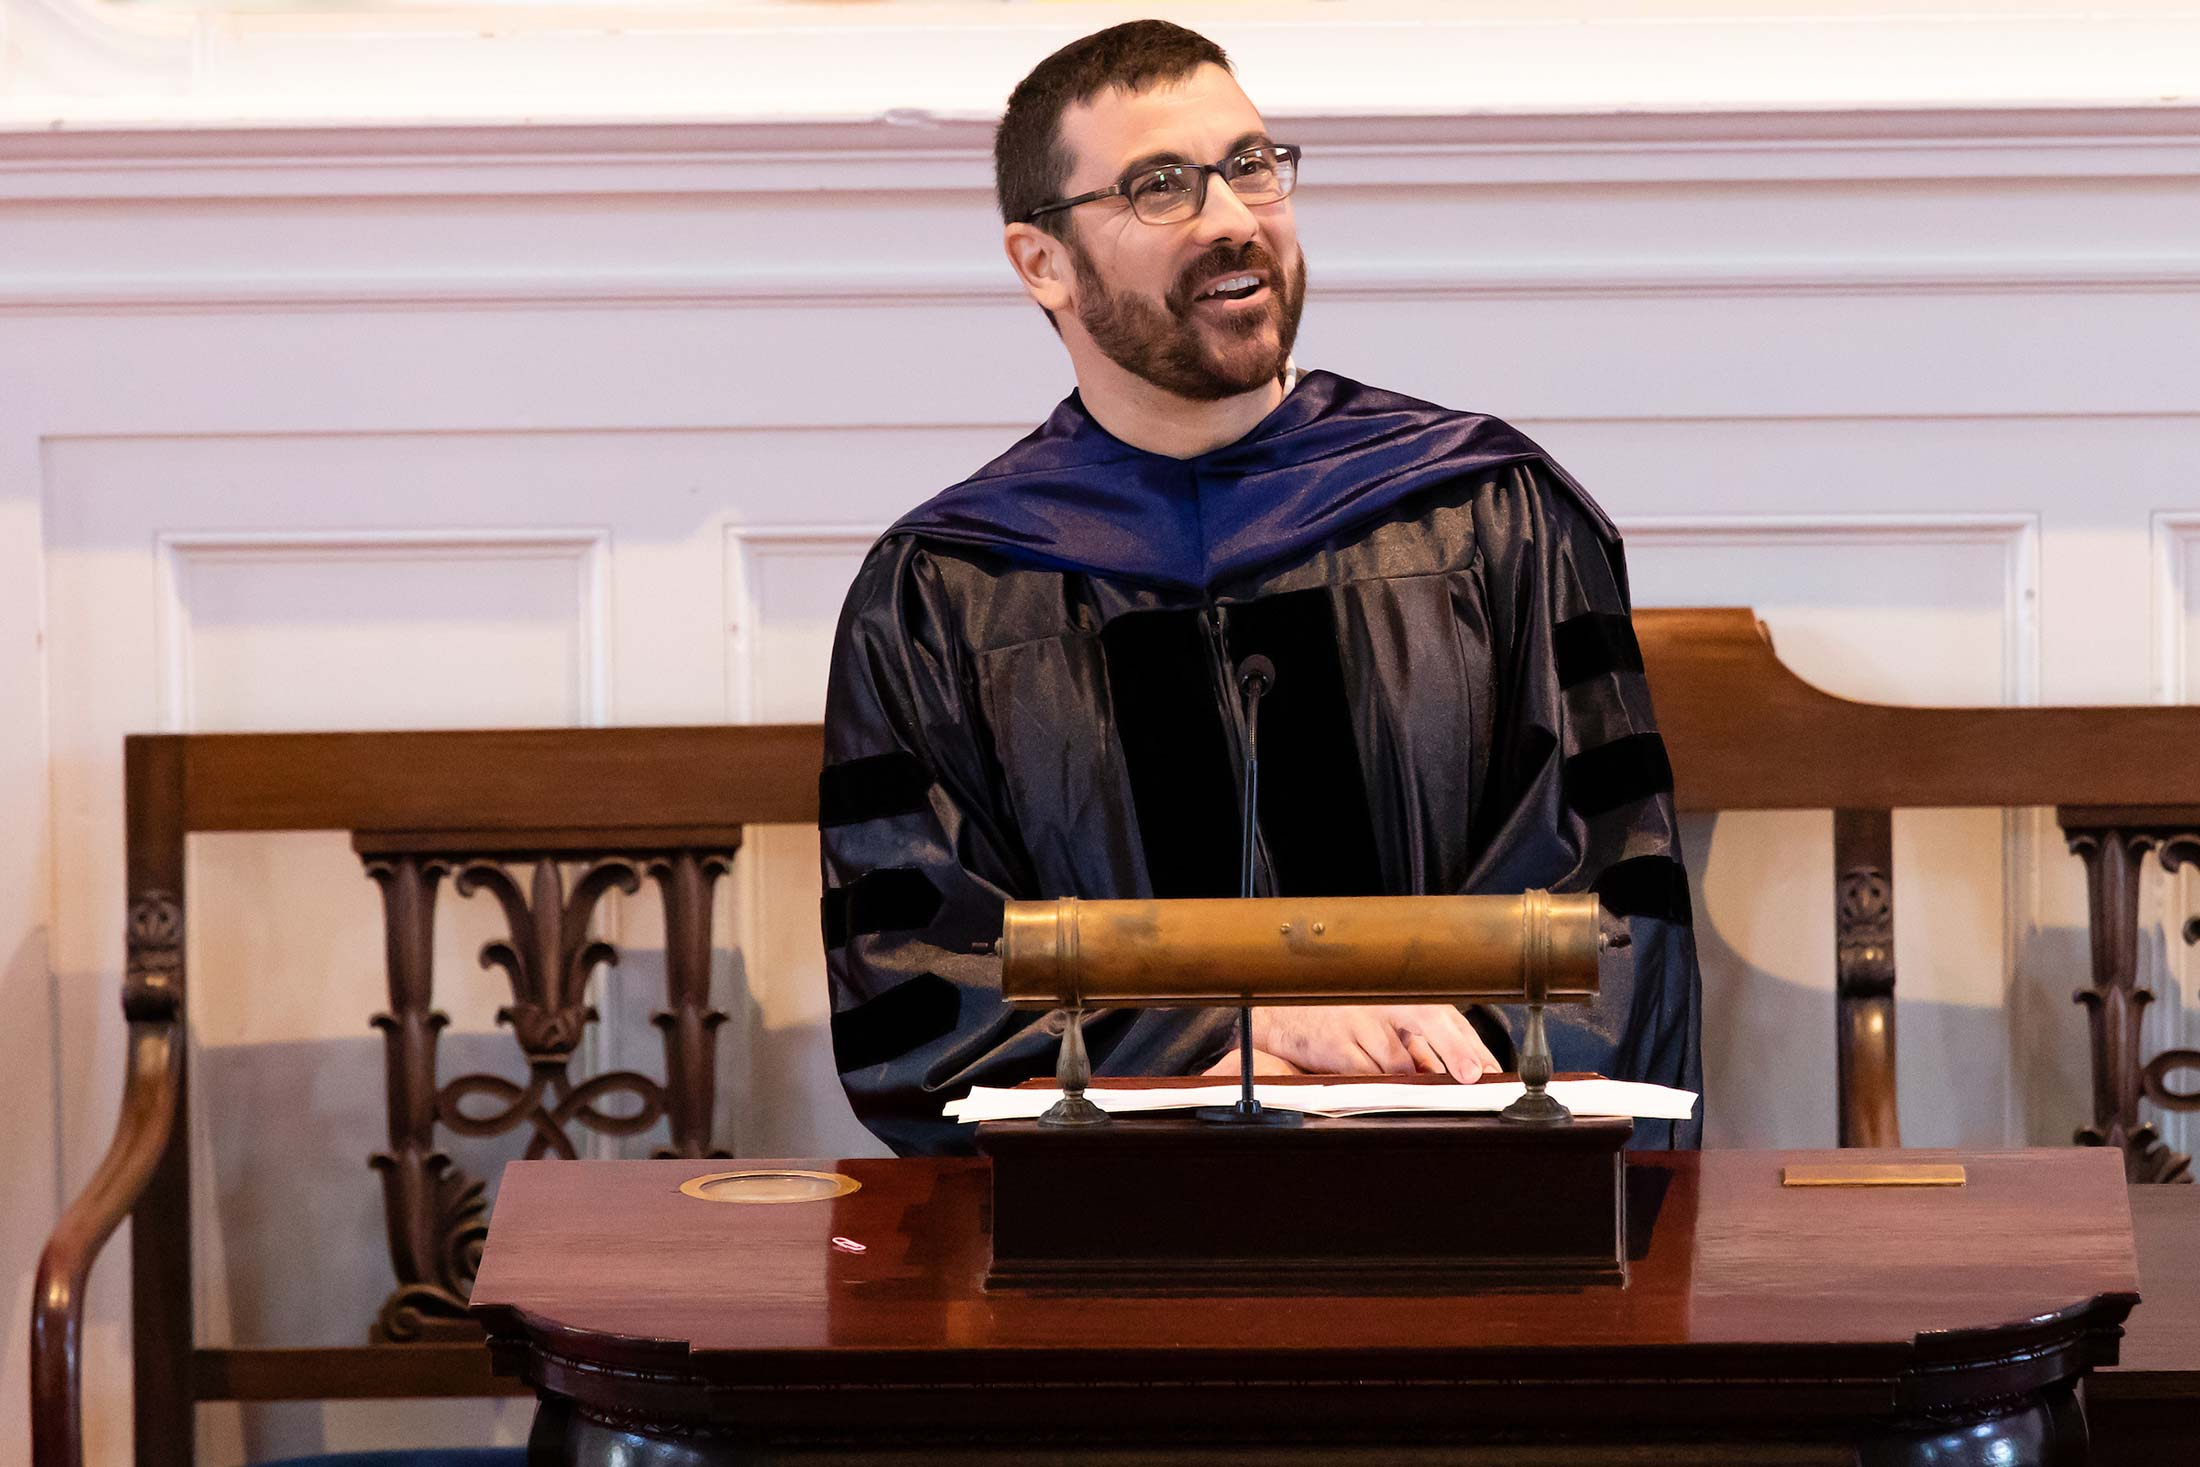 Professor Josef Trapani speaking to students during Senior Awards Assembly in Johnson Chapel at Amherst College